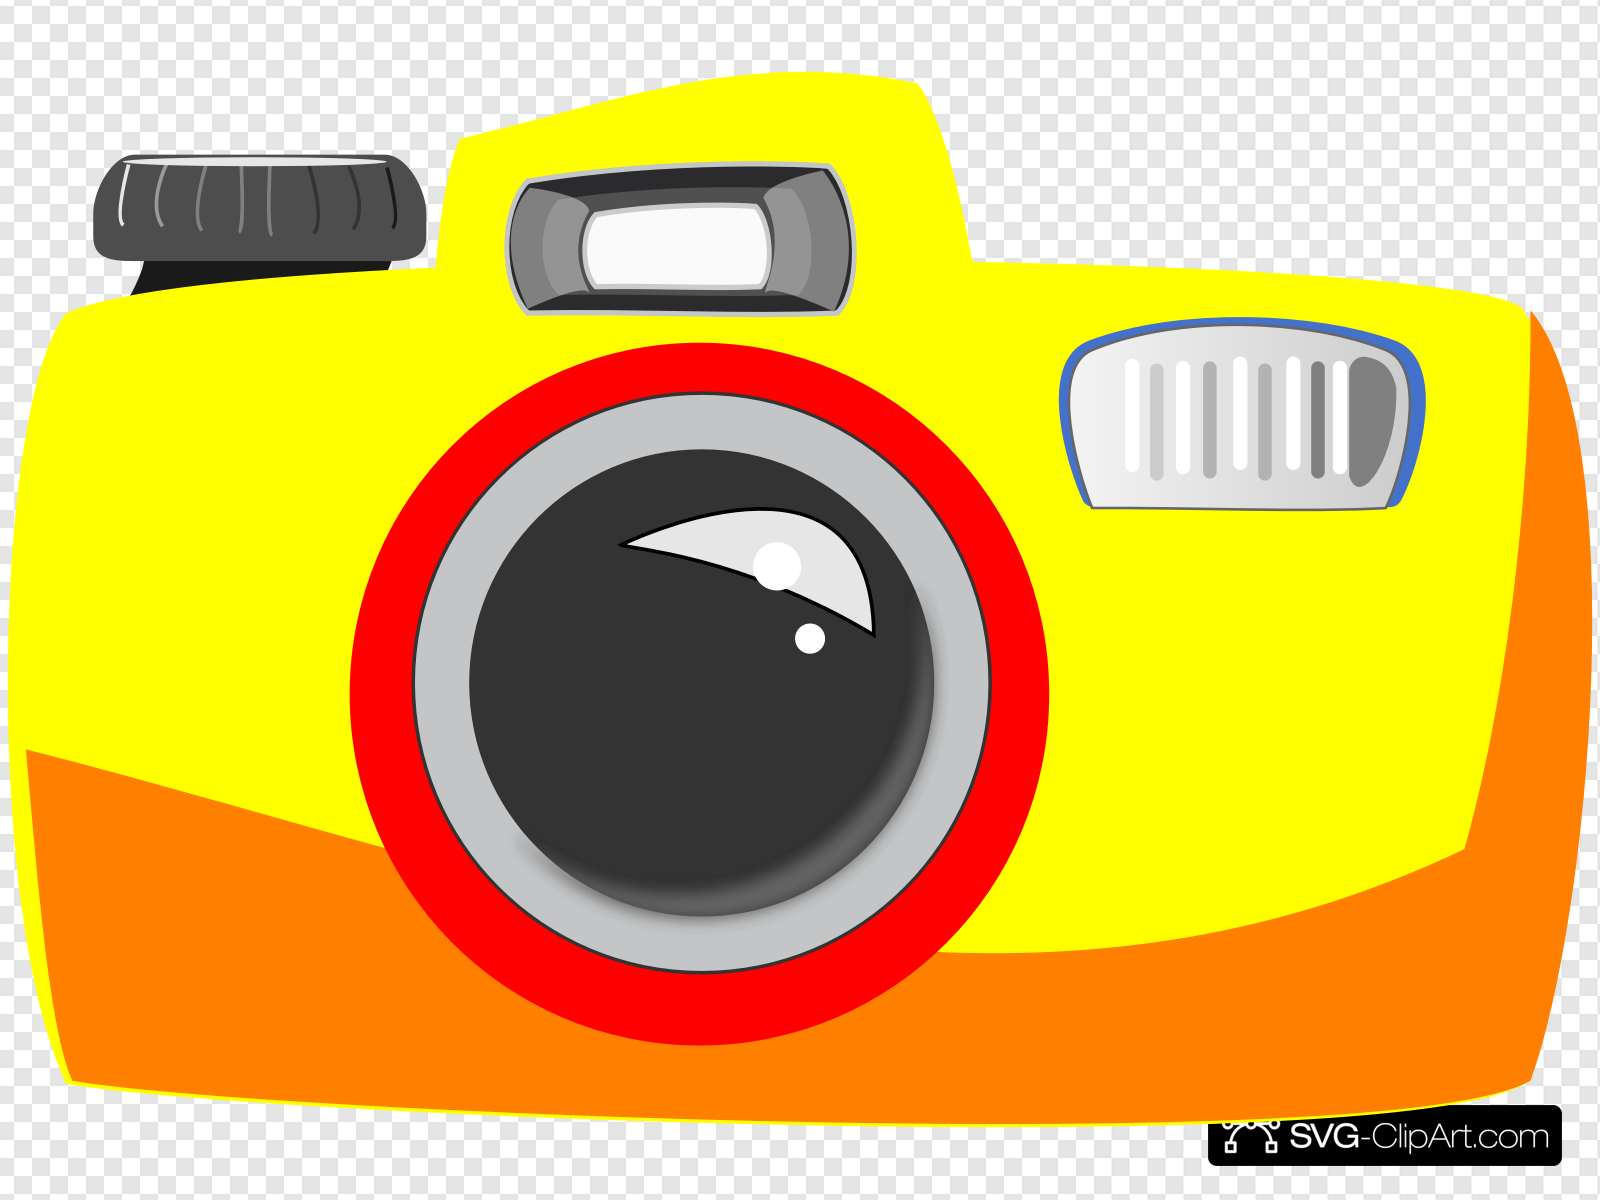 Simple Camera Clip art, Icon and SVG.